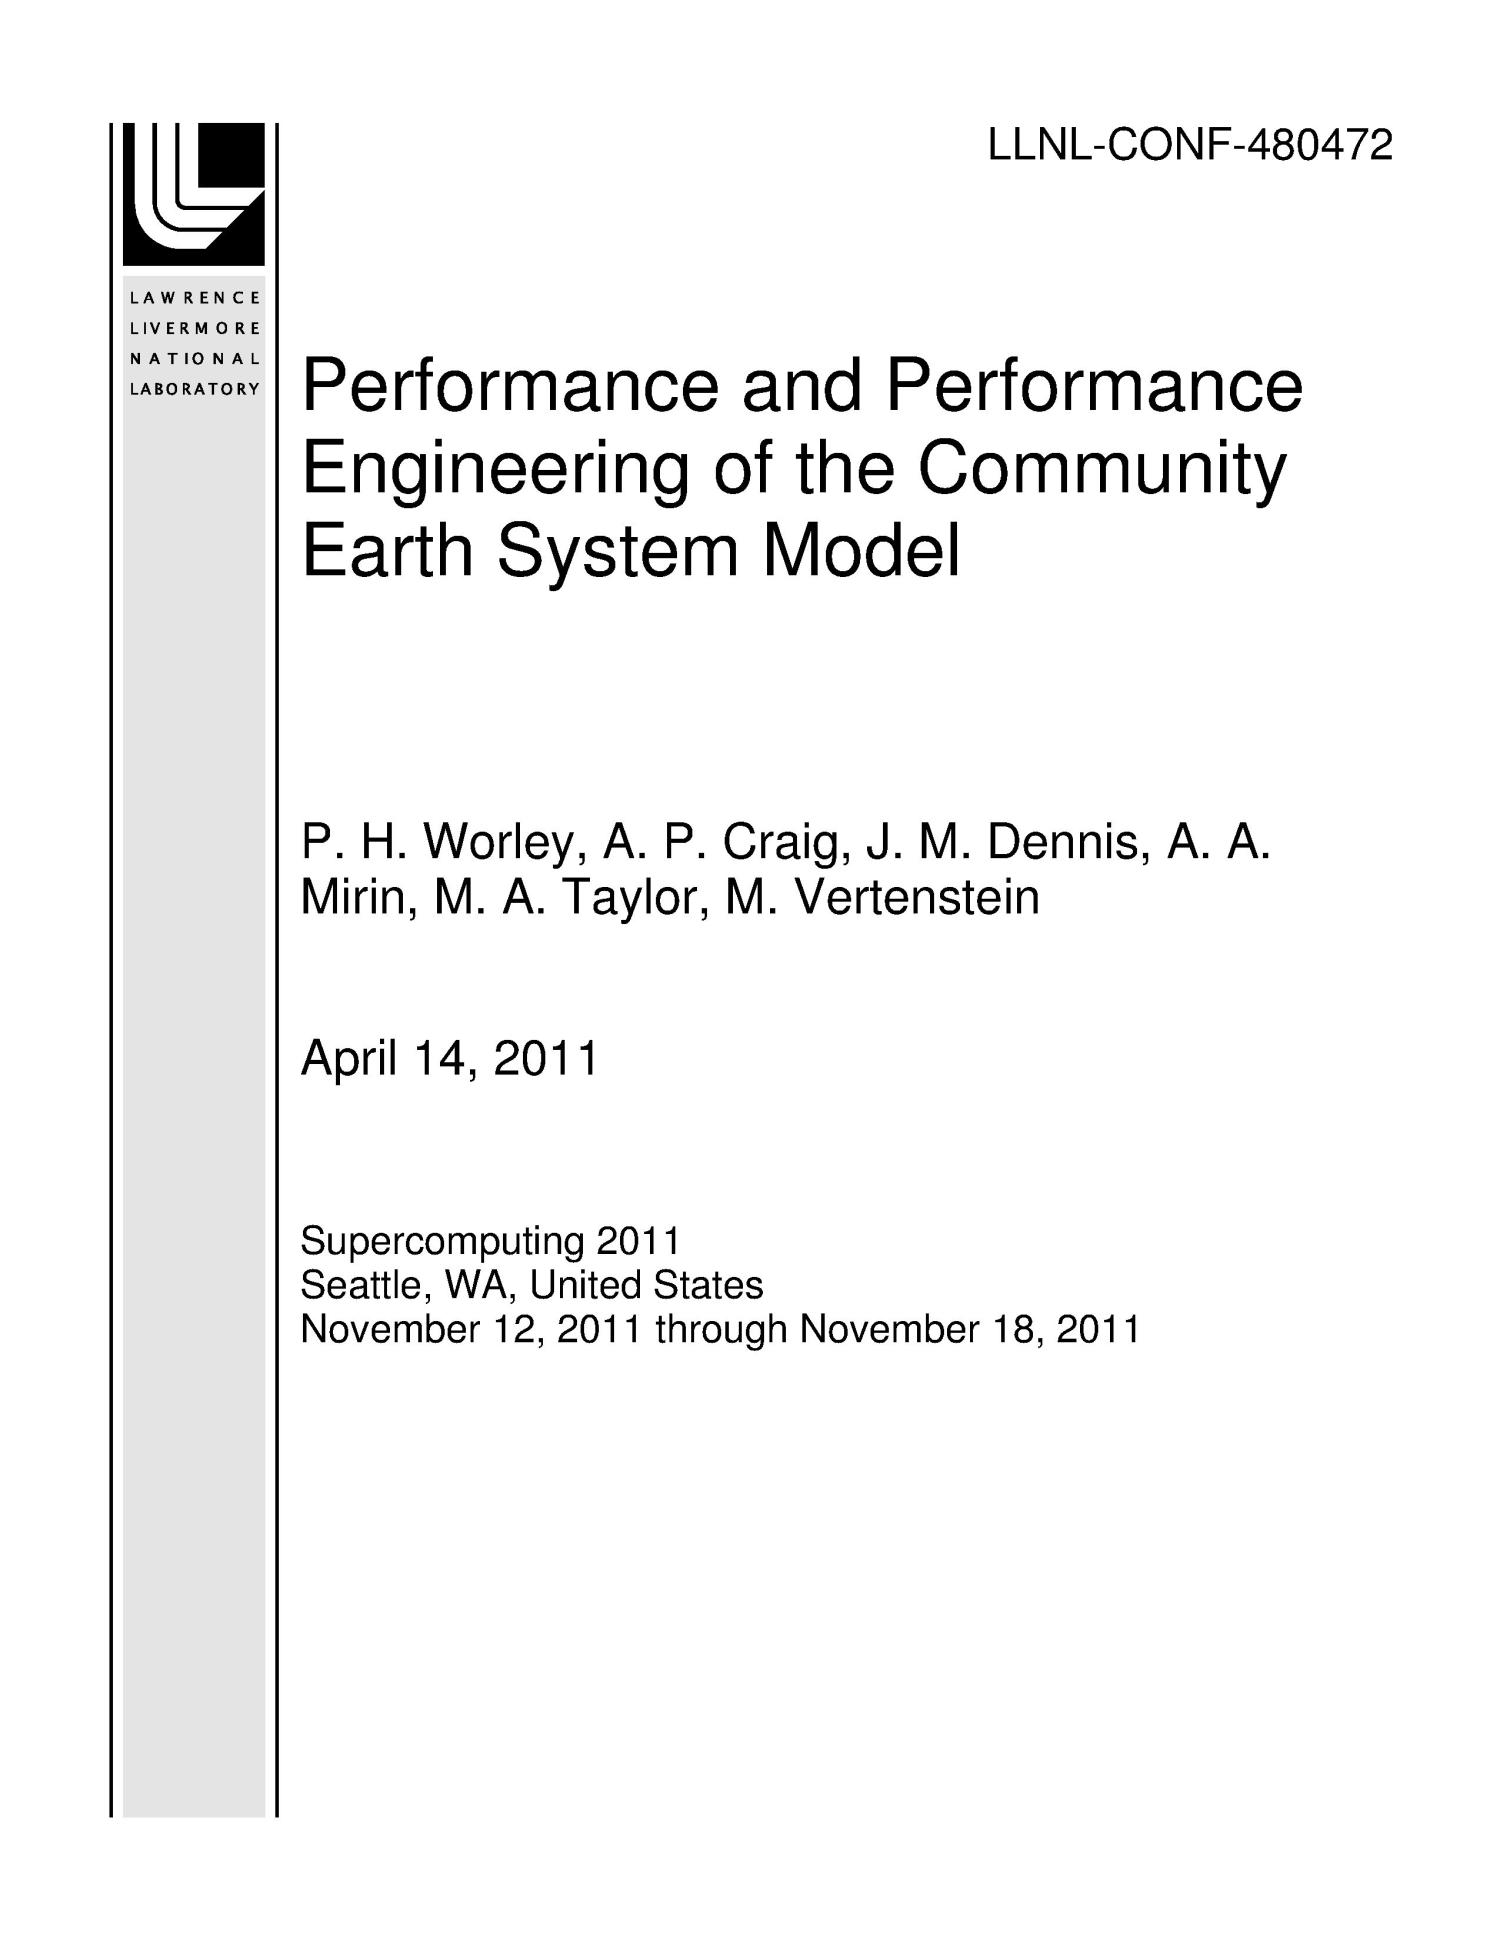 Performance and Performance Engineering of the Community Earth System Model                                                                                                      [Sequence #]: 1 of 12